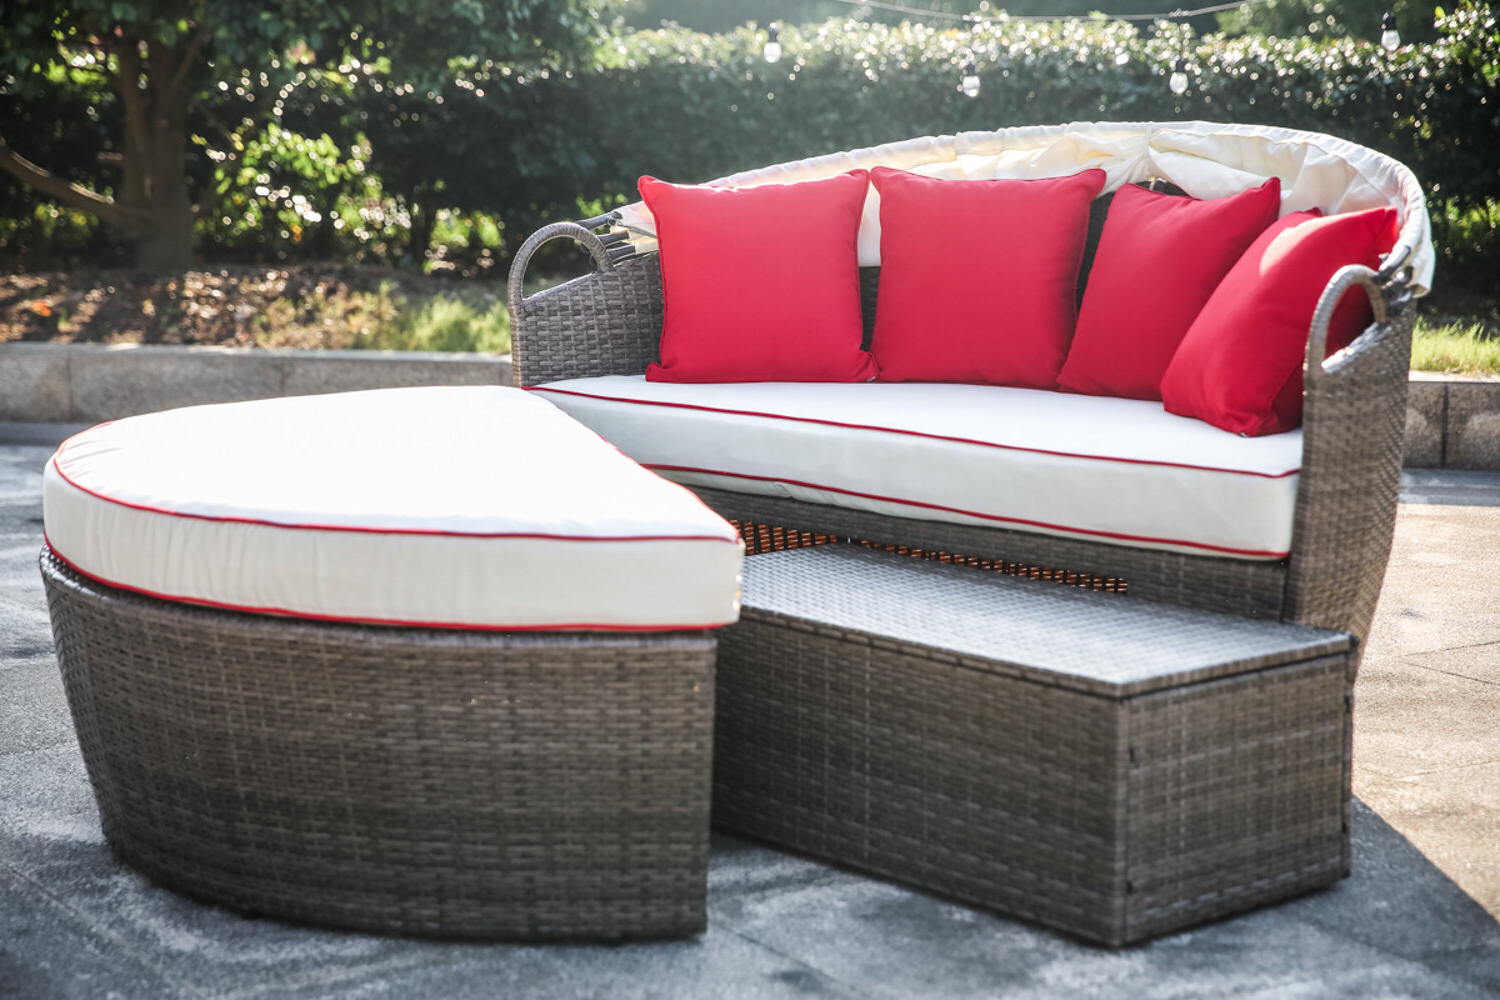 Favorite Fansler Patio Daybed With Cushions Pertaining To Carrasco Patio Daybeds With Cushions (View 9 of 20)